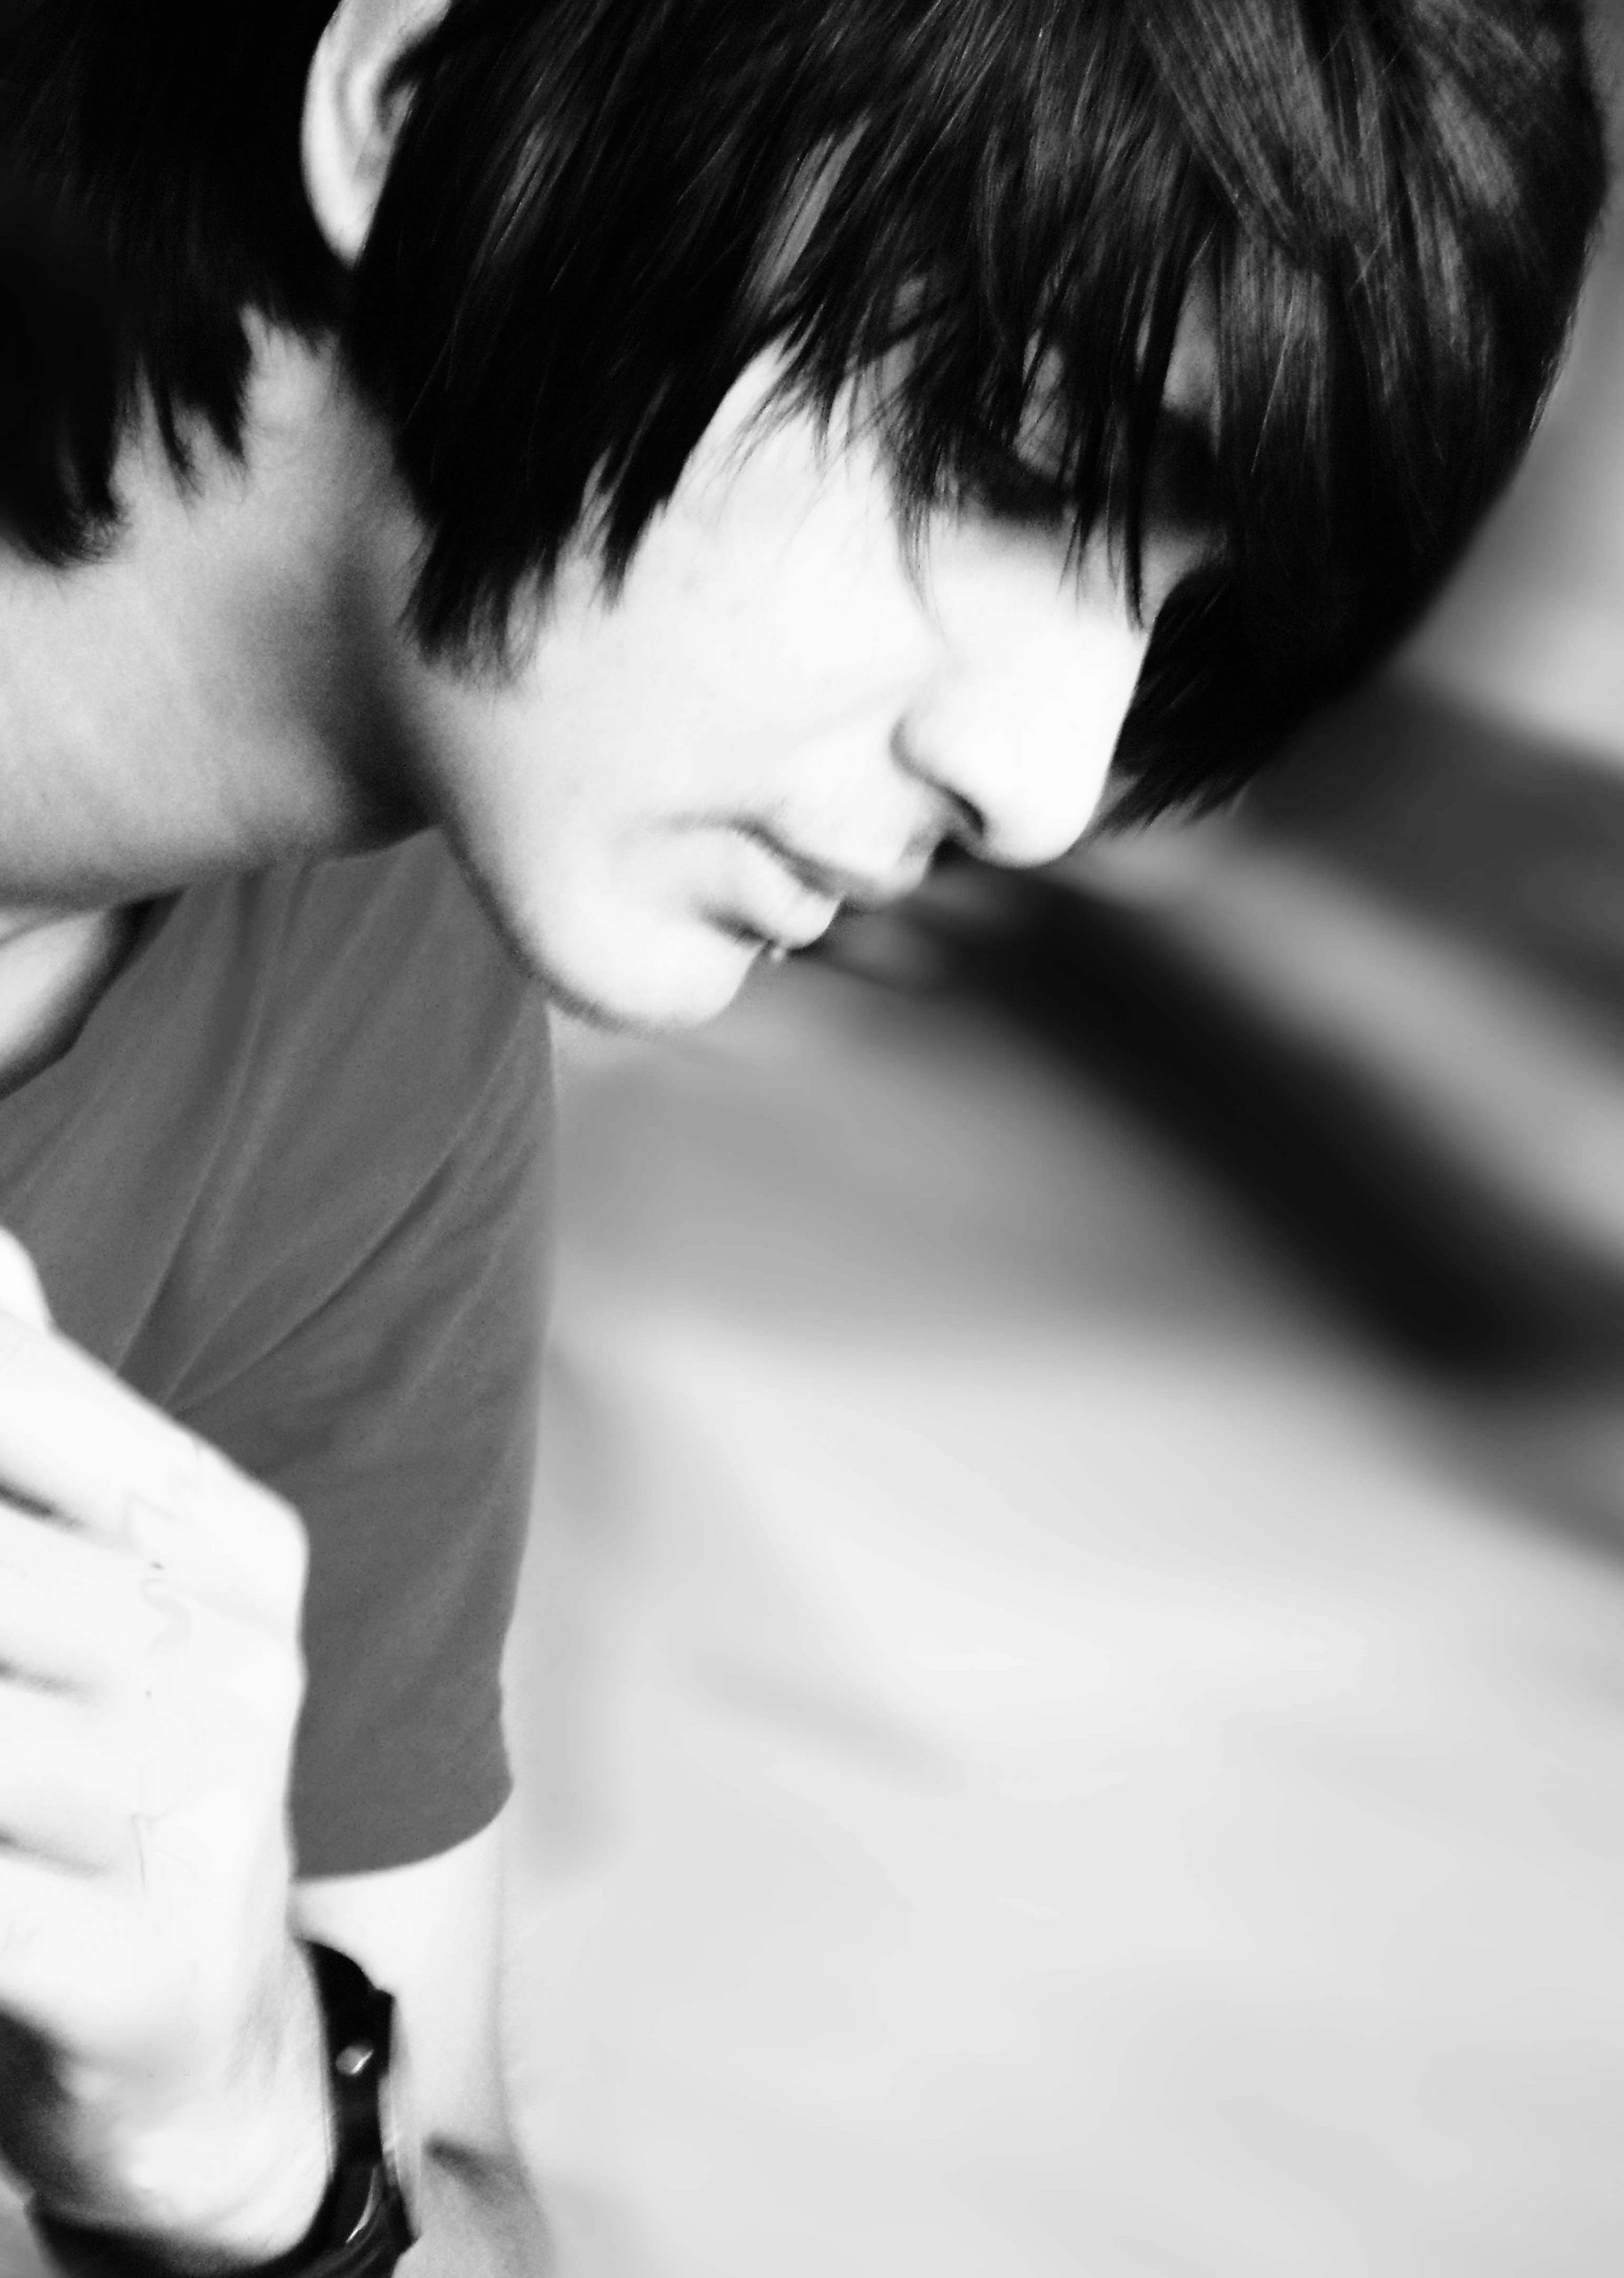 Free Download Love Sad Boy And Girl In Love Alone Wallpaper Alone Crying Face And 1825x2560 For Your Desktop Mobile Tablet Explore 50 Crying Wallpapers Love Kim Kardashian Crying